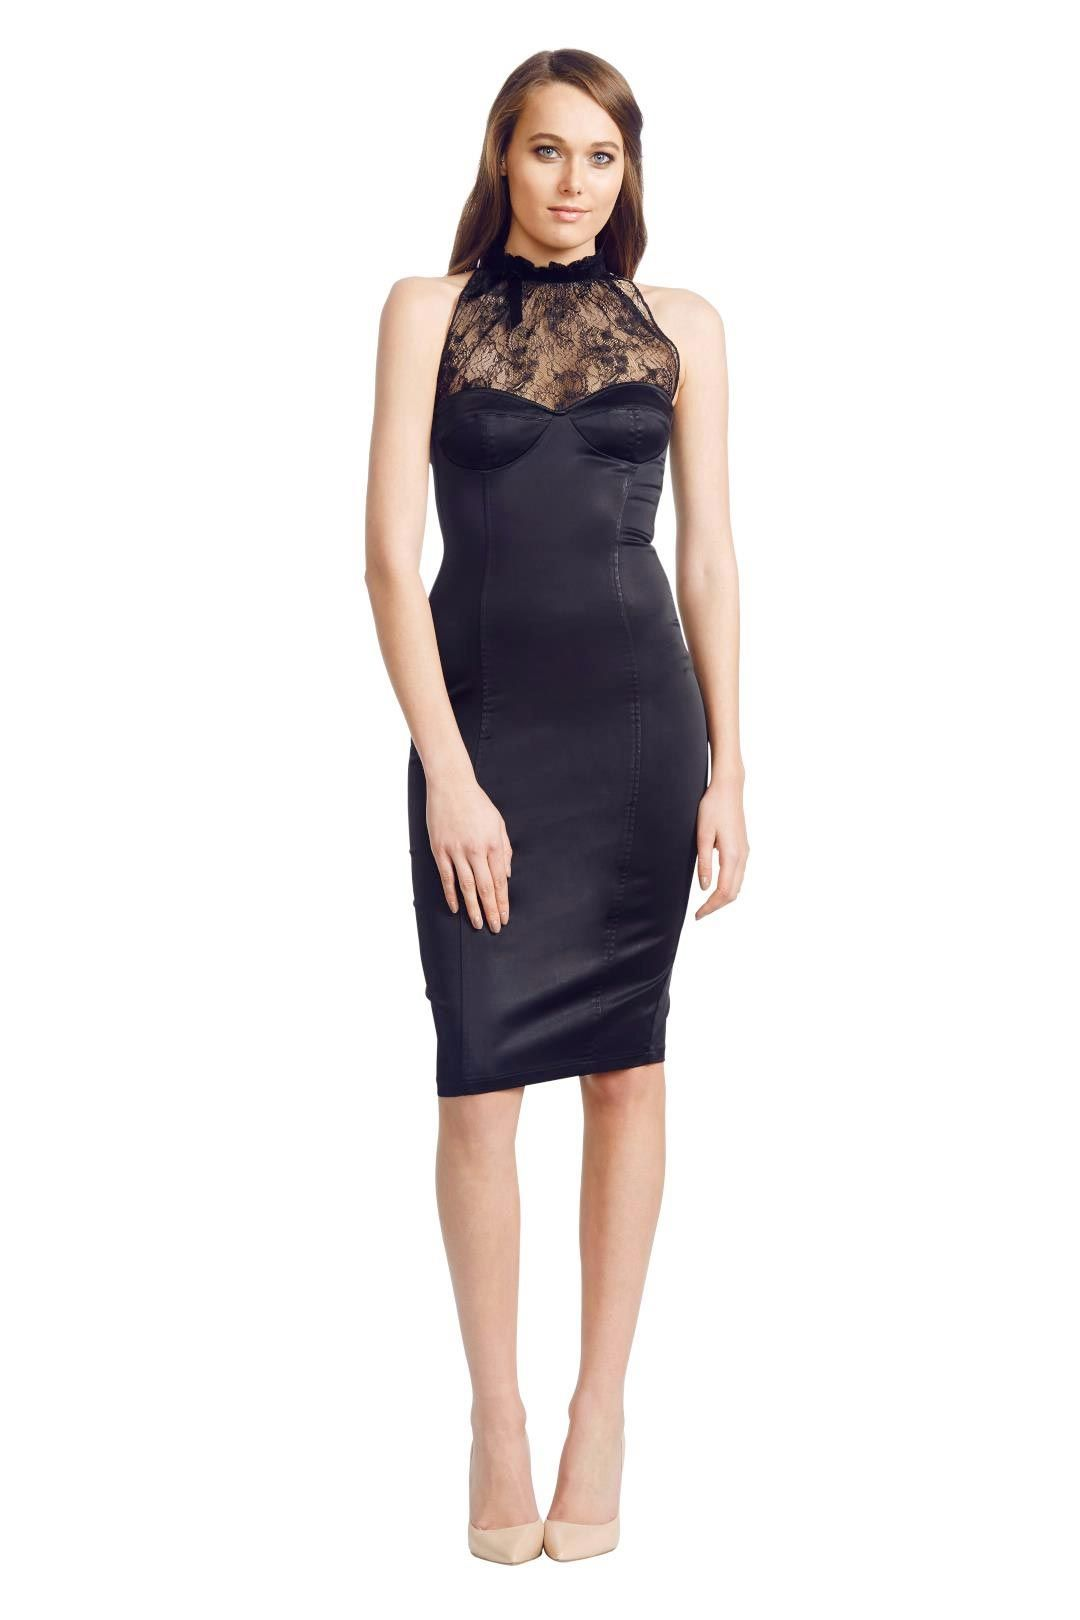 Wheels & Dollbaby - Uptown Girl - Black - Front